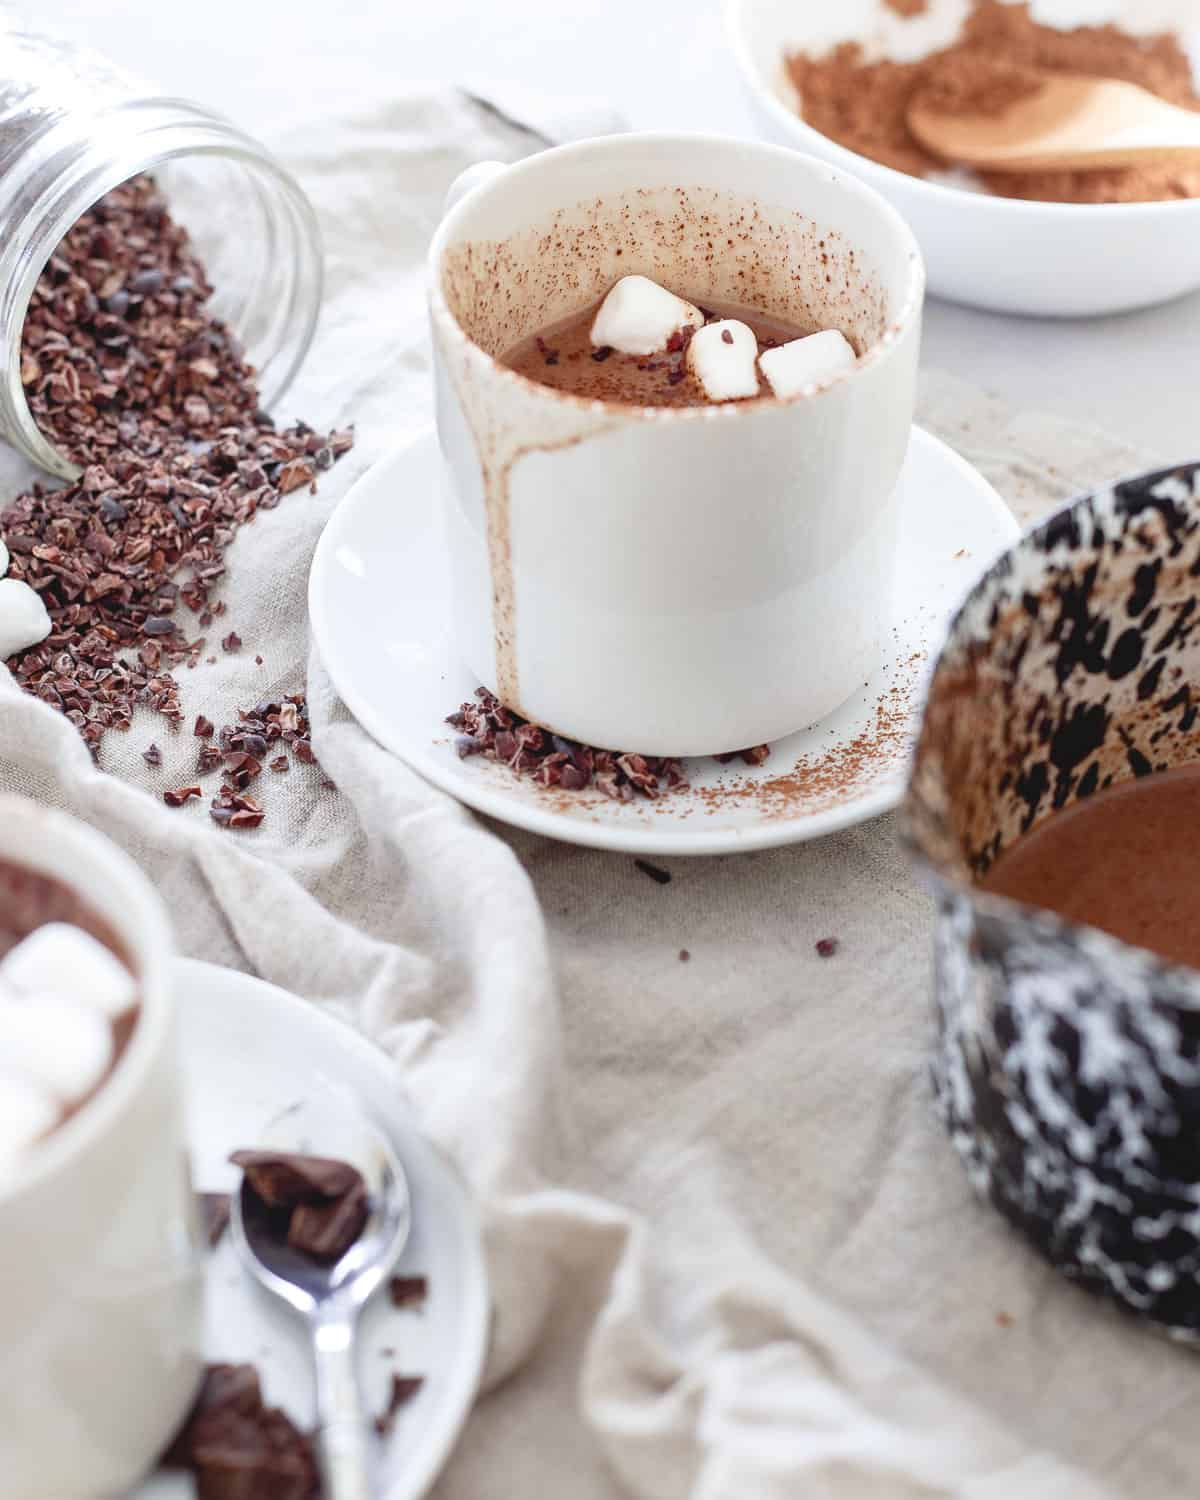 Top off a mug of this tart cherry hot chocolate with cocoa powder, cacao nibs and of course, some marshmallows for a delicious winter treat.